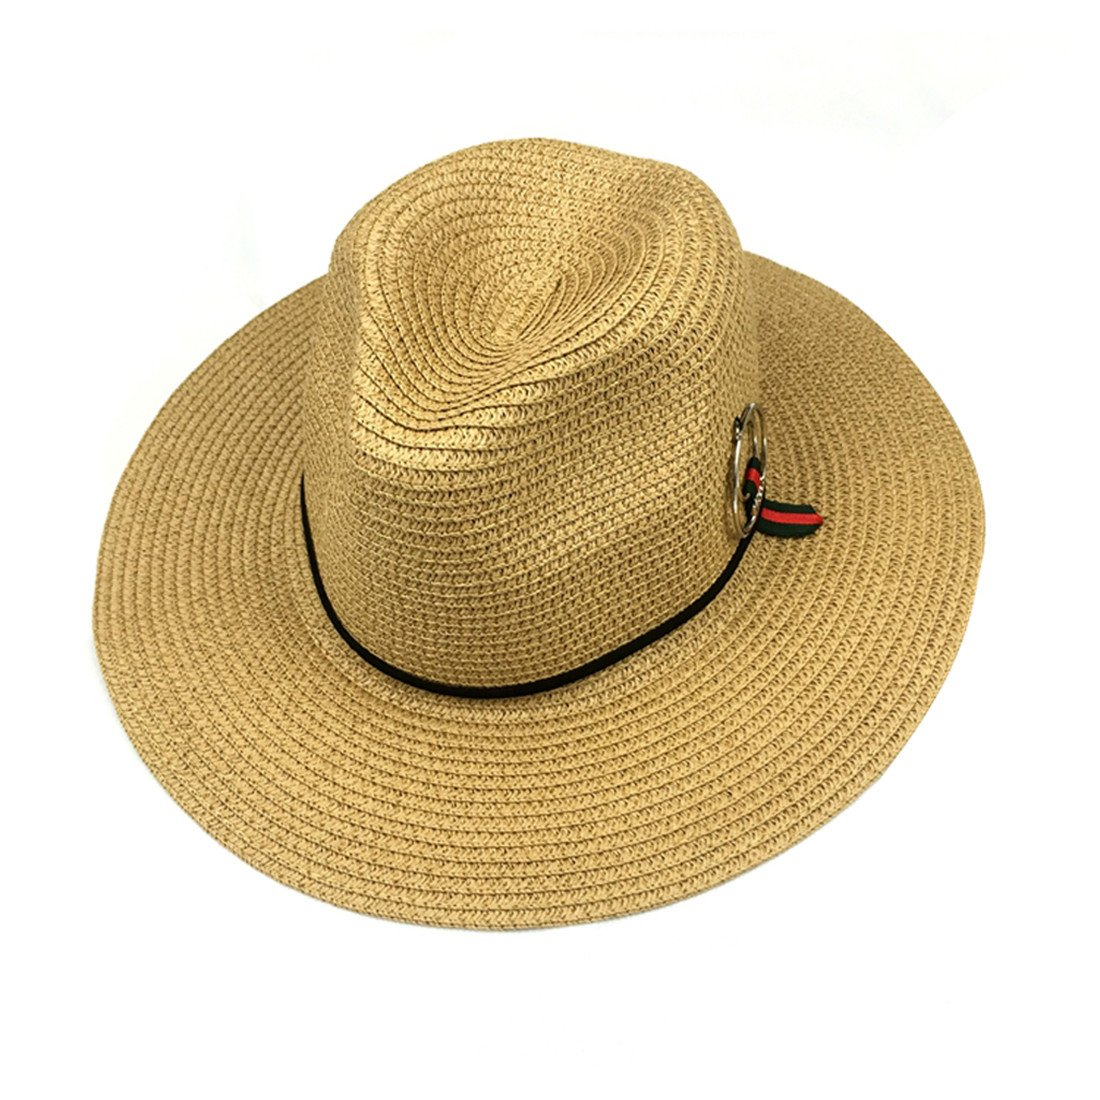 ACVIP Women's Summer Straw Panama Hat Sun Cap with Ring Detail